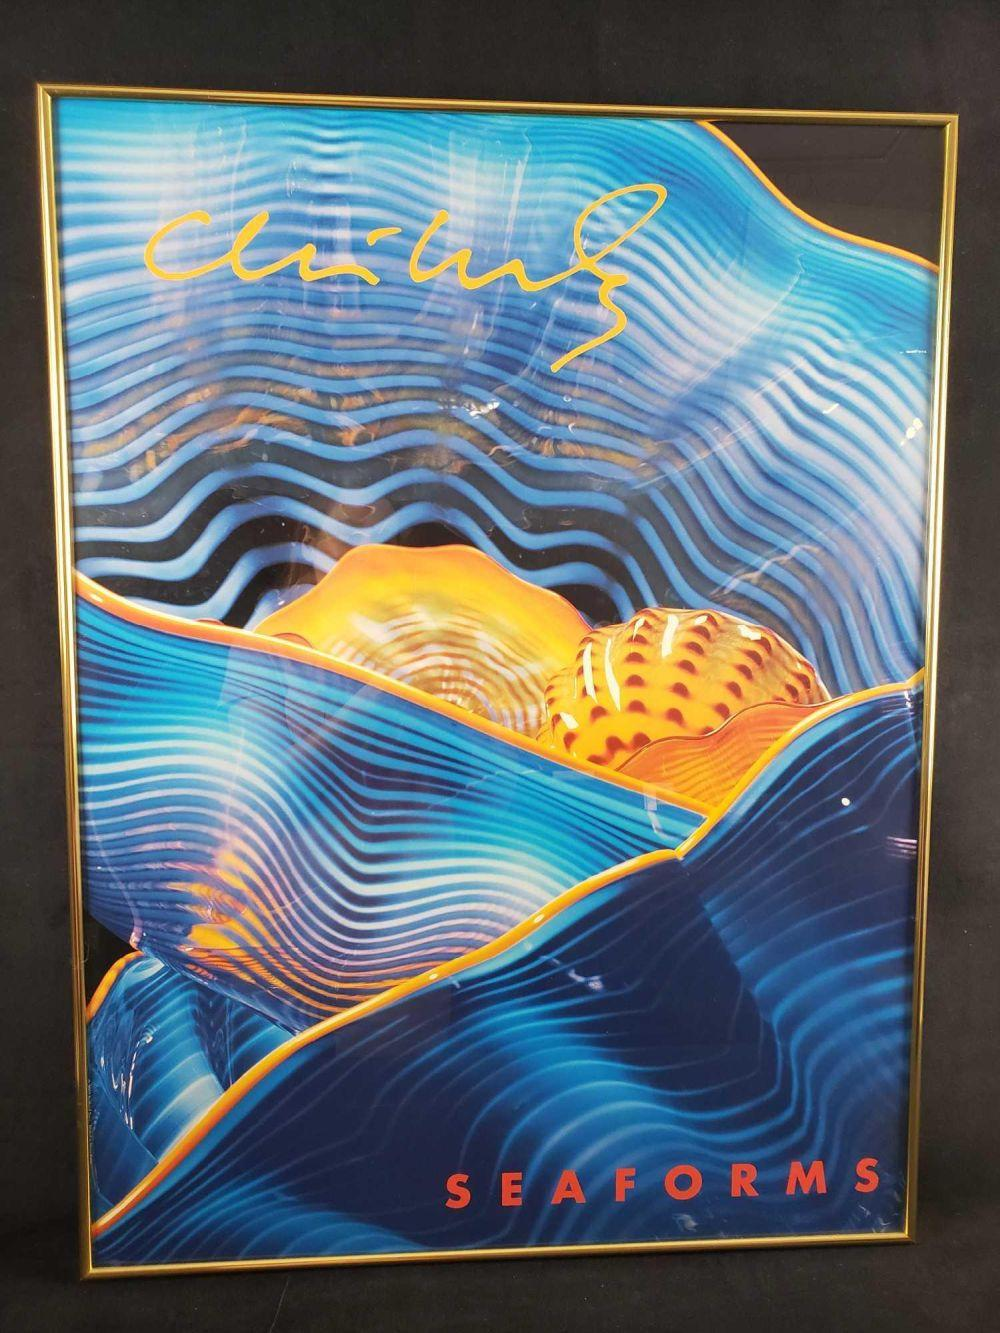 Lot 217: Chihuly Seaforms Framed Poster